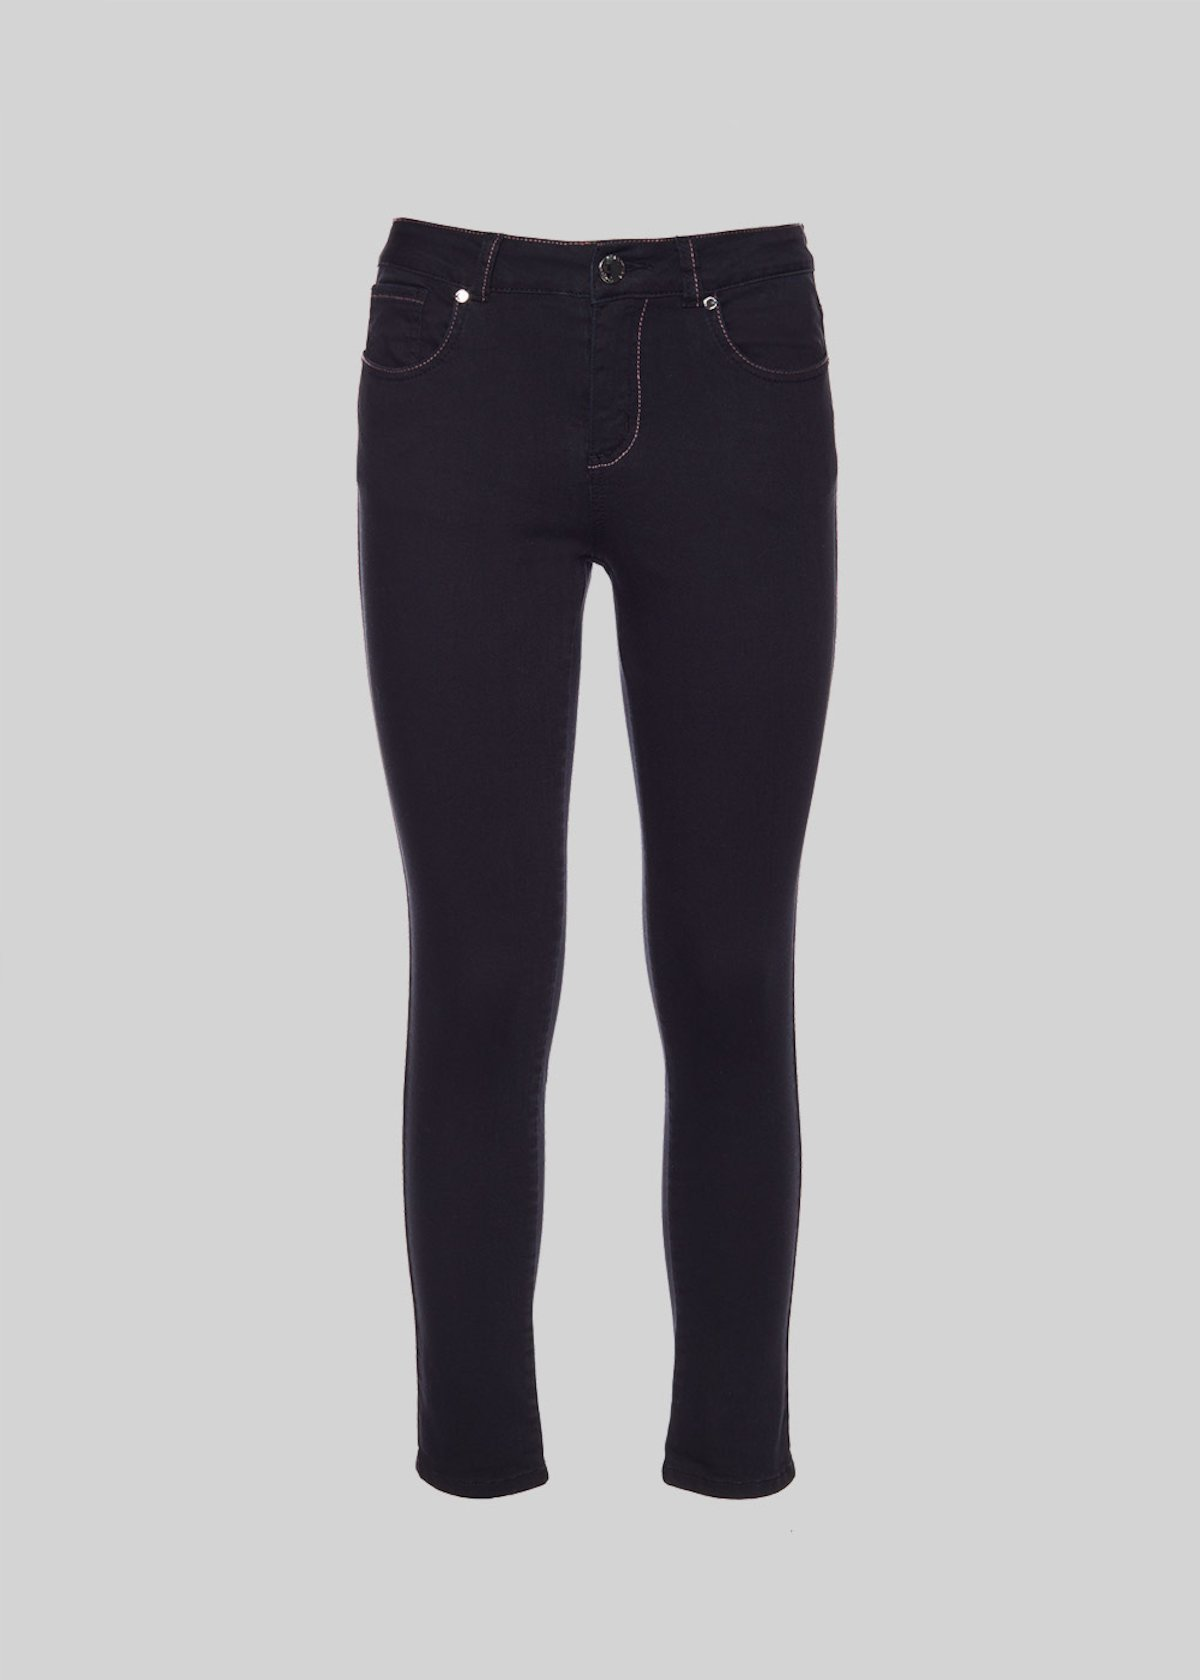 Pantaloni Dolly con gamba slim - Black